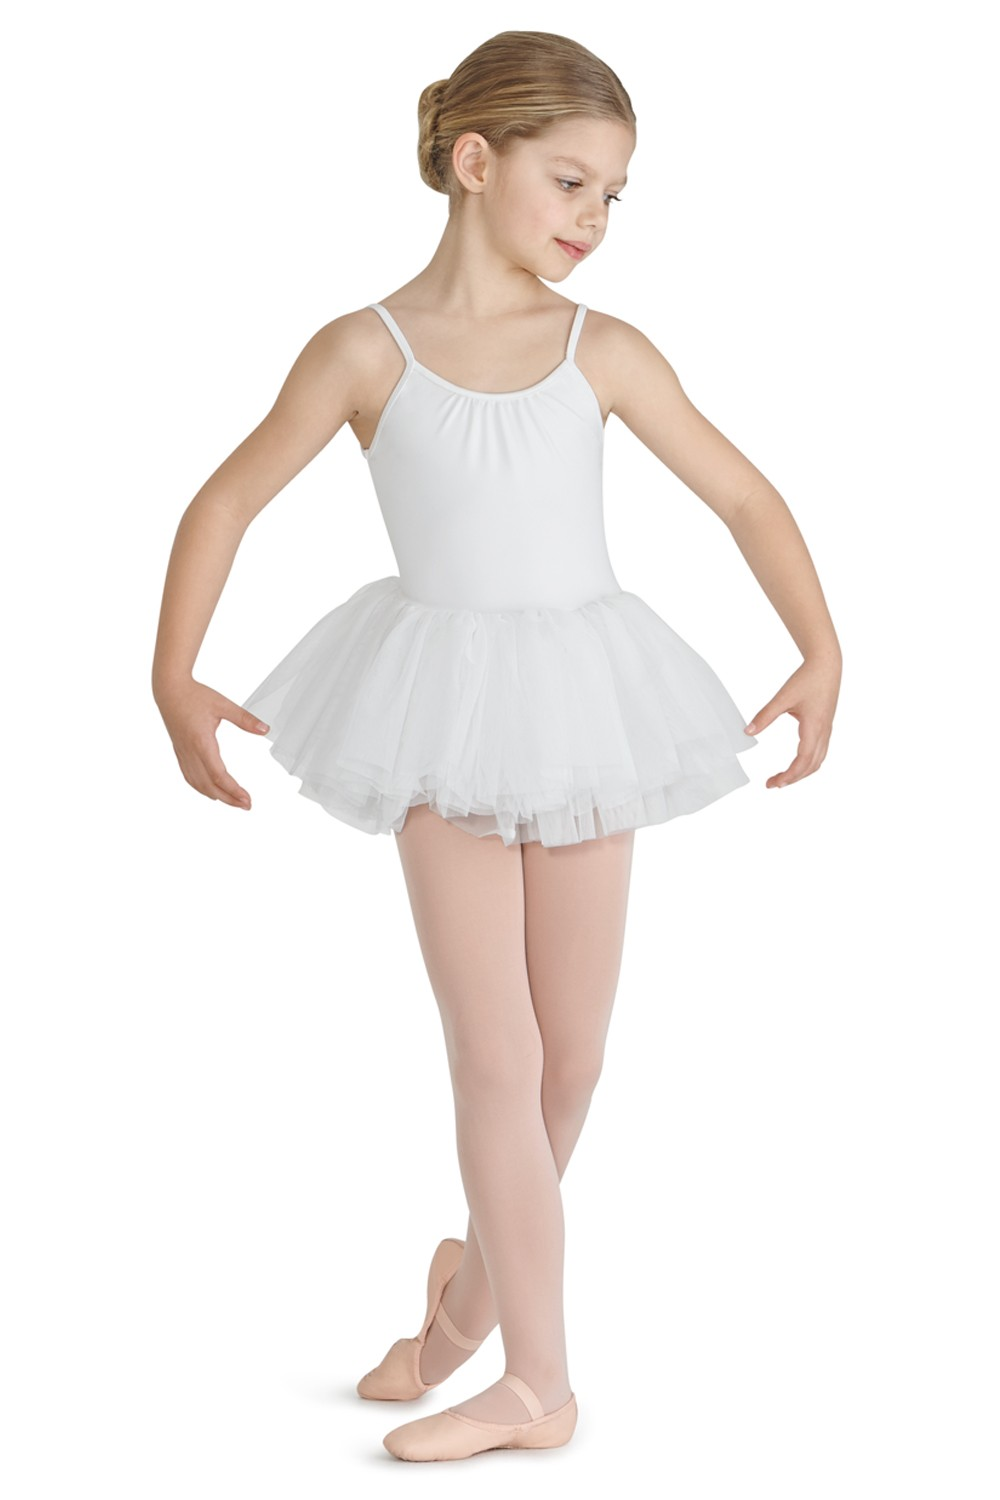 Tutu Camisole Leotard Children's Dance Leotards